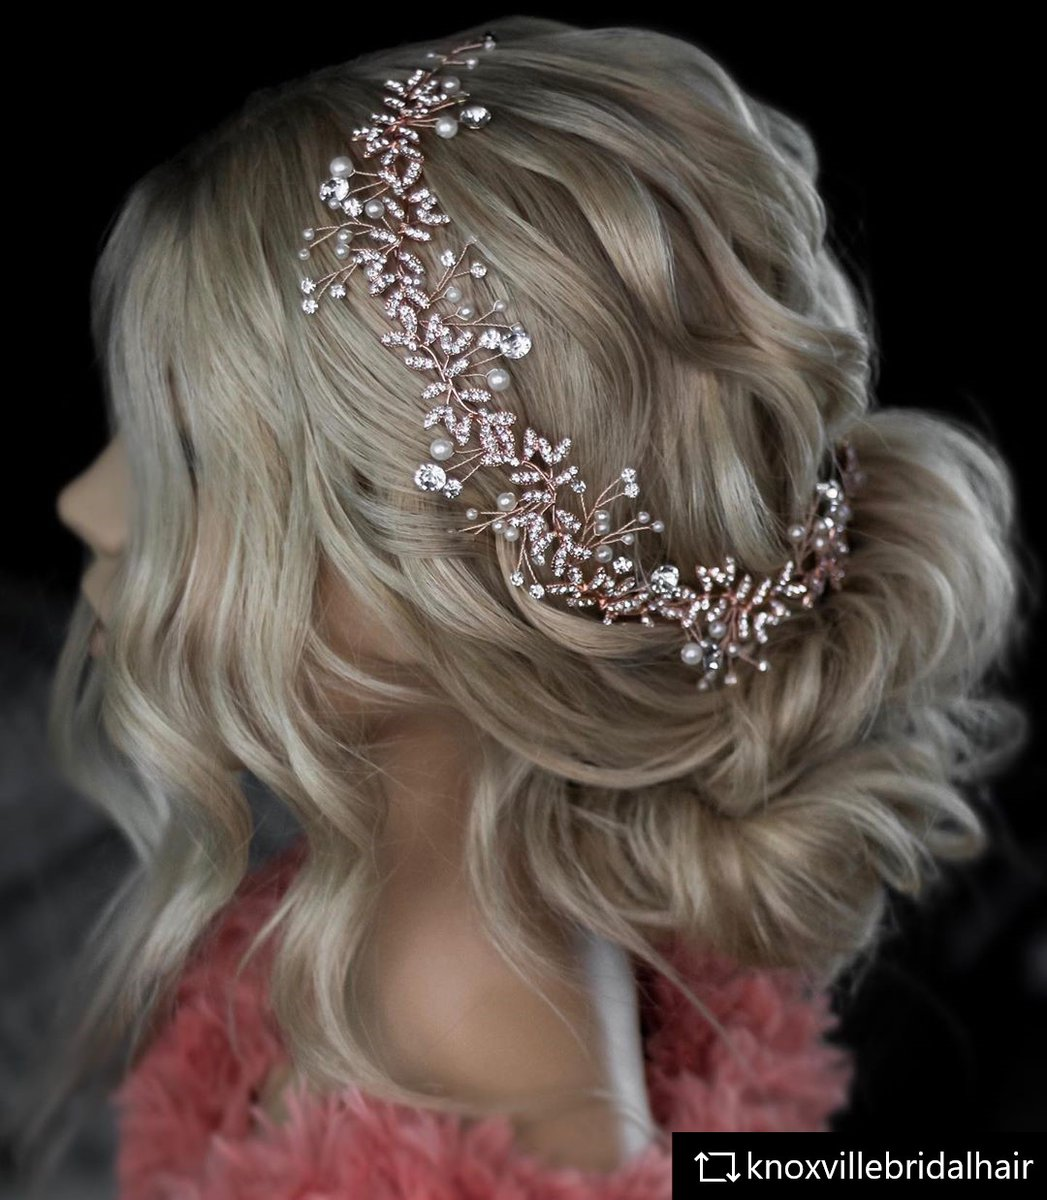 work by @knoxvillebridalhair  SO SPECIAL!  MANNEQUIN: https://www.limage.de/louisa-omc.html  #limage #blond #updo #makeup#updos #braids #braid #weddinghair #wedding #love #Hairstylist #hairstyle #mannequinhead #hairgoals #waves #blondhair #dollhead #curly #hollywoodhair #longhairpic.twitter.com/1JCaOhEECK